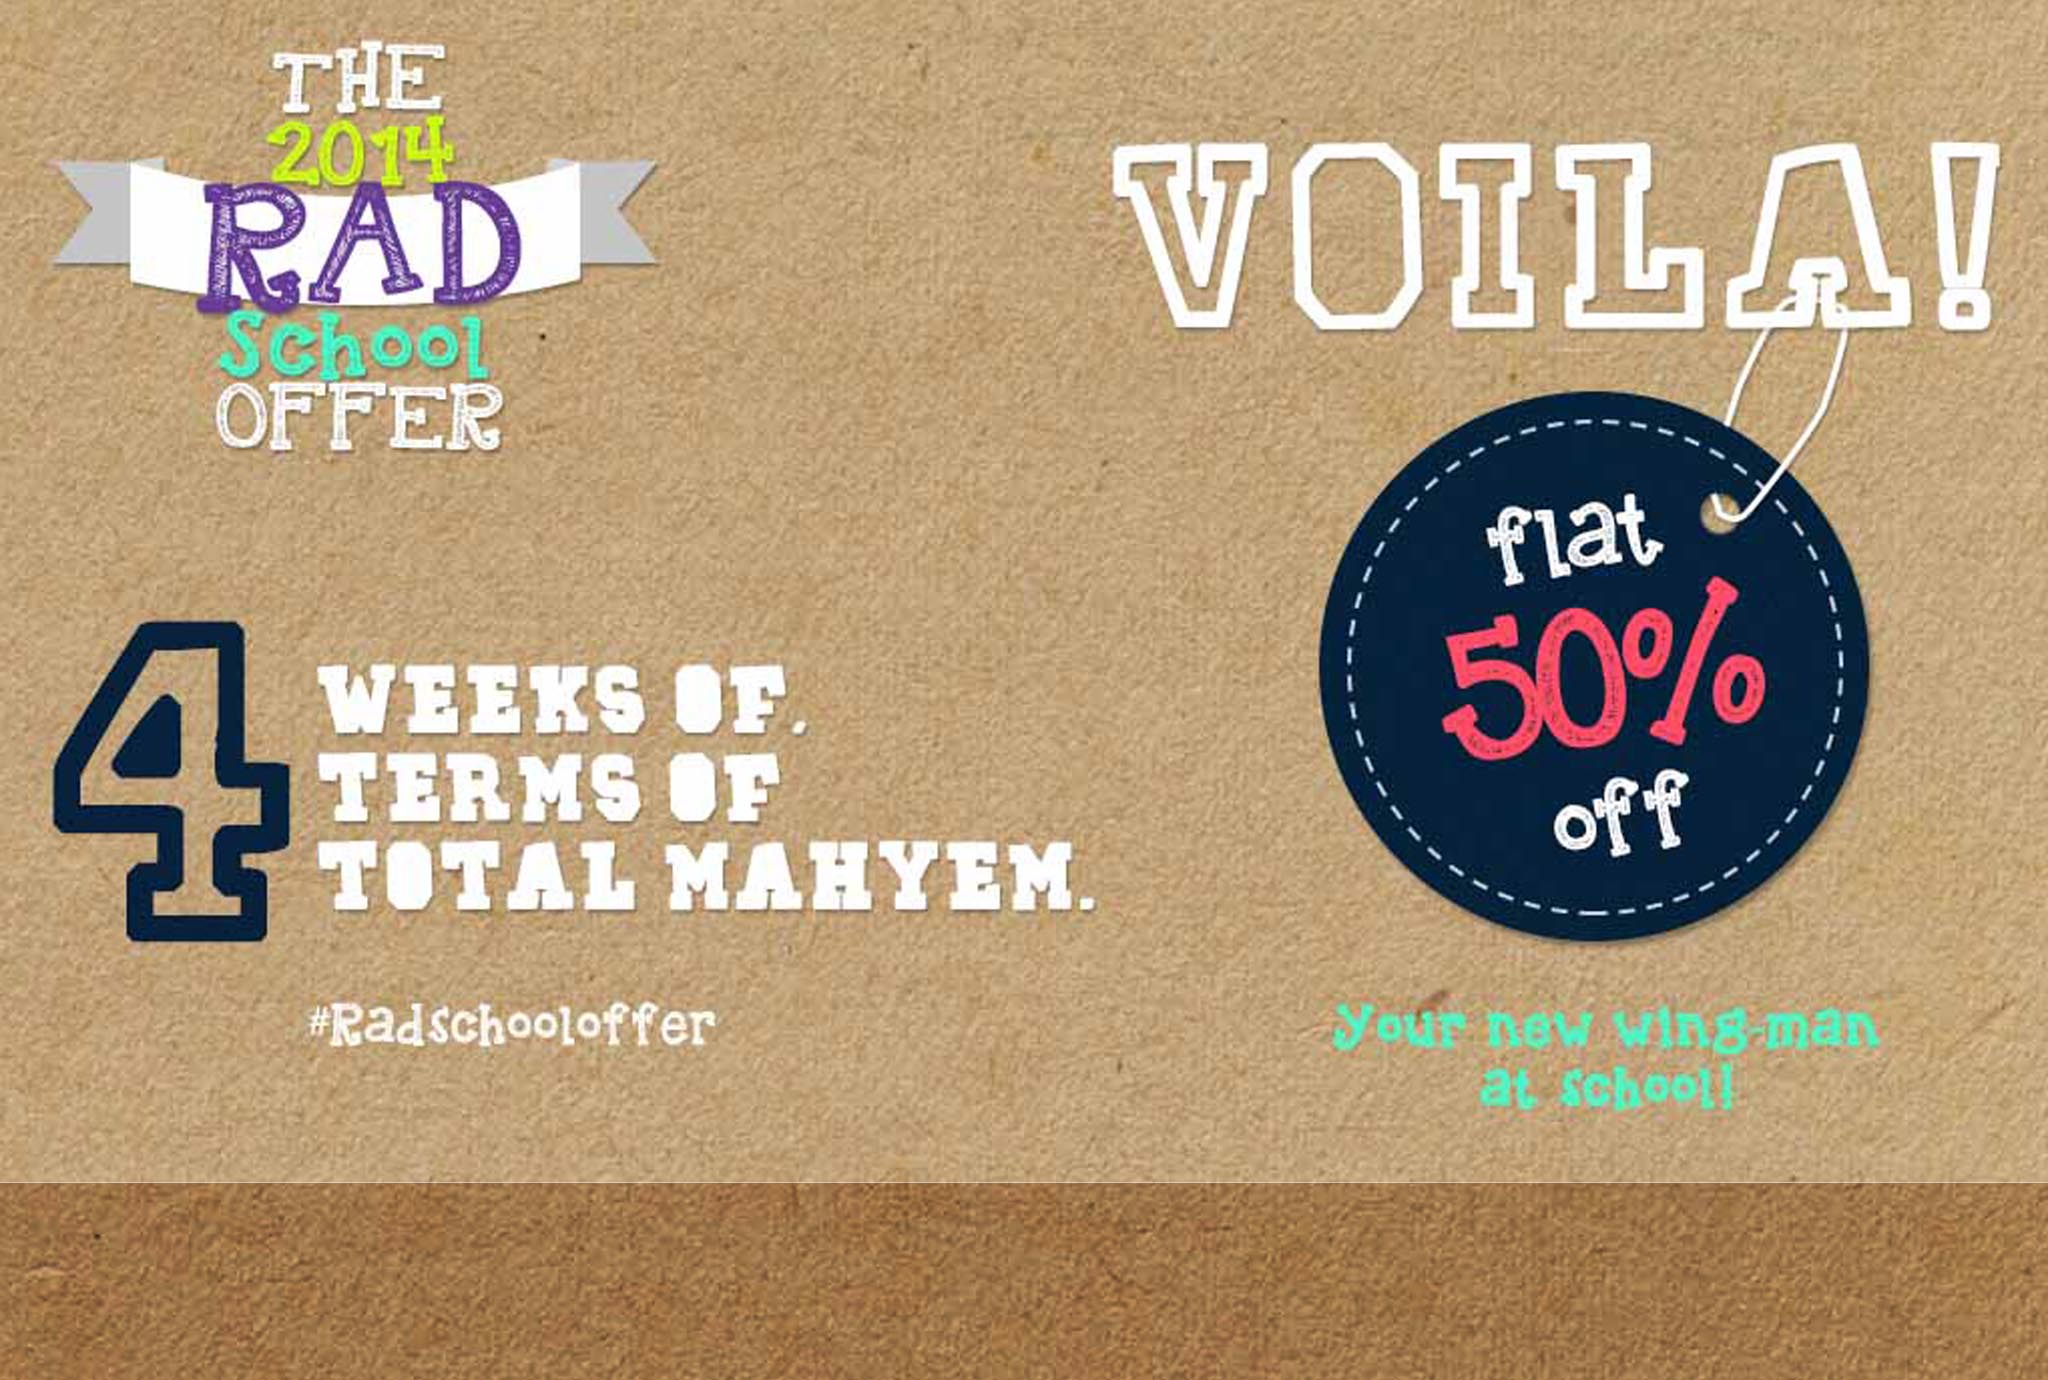 Voila Rad School Offer Banner